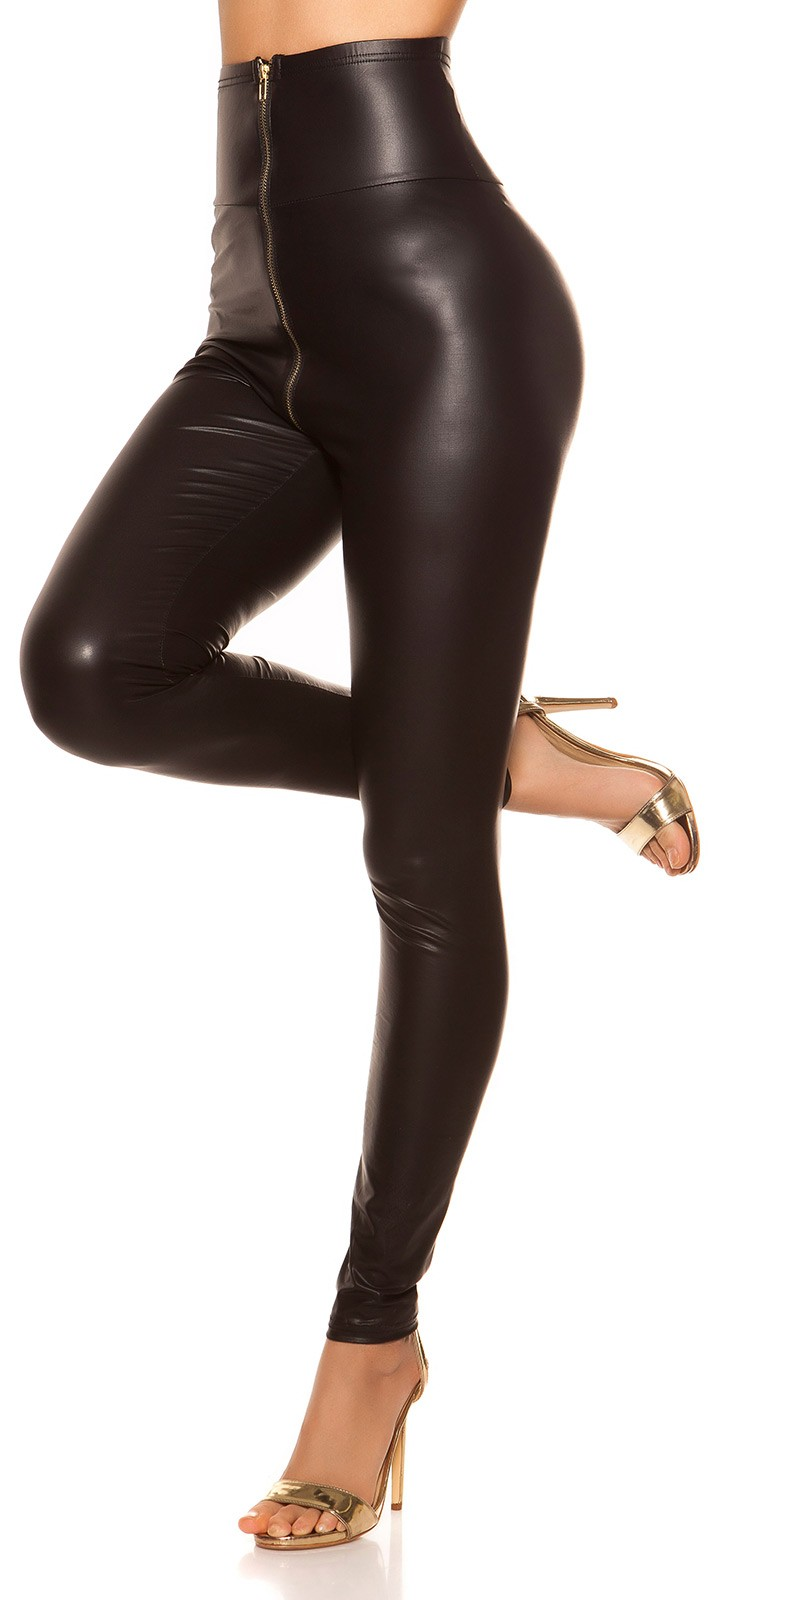 dbe291f05786 ooKouCla High Waist Wetlook Leggings  Color BLACK Size S 0000IN5052811 SCHWARZ 23